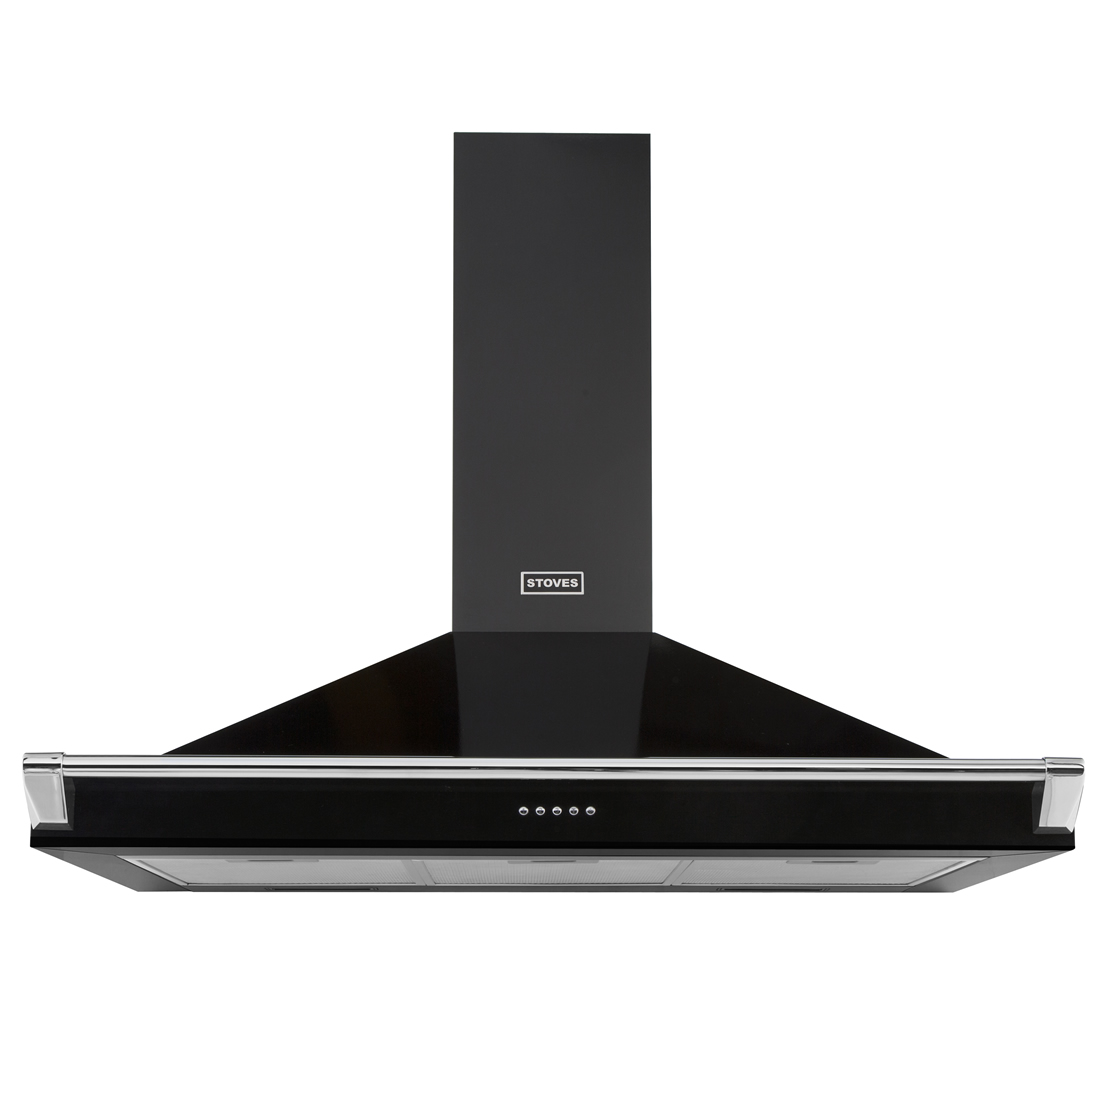 Image of 1000mm Chimney Cooker Hood with Rail 3-Speed Fan Black